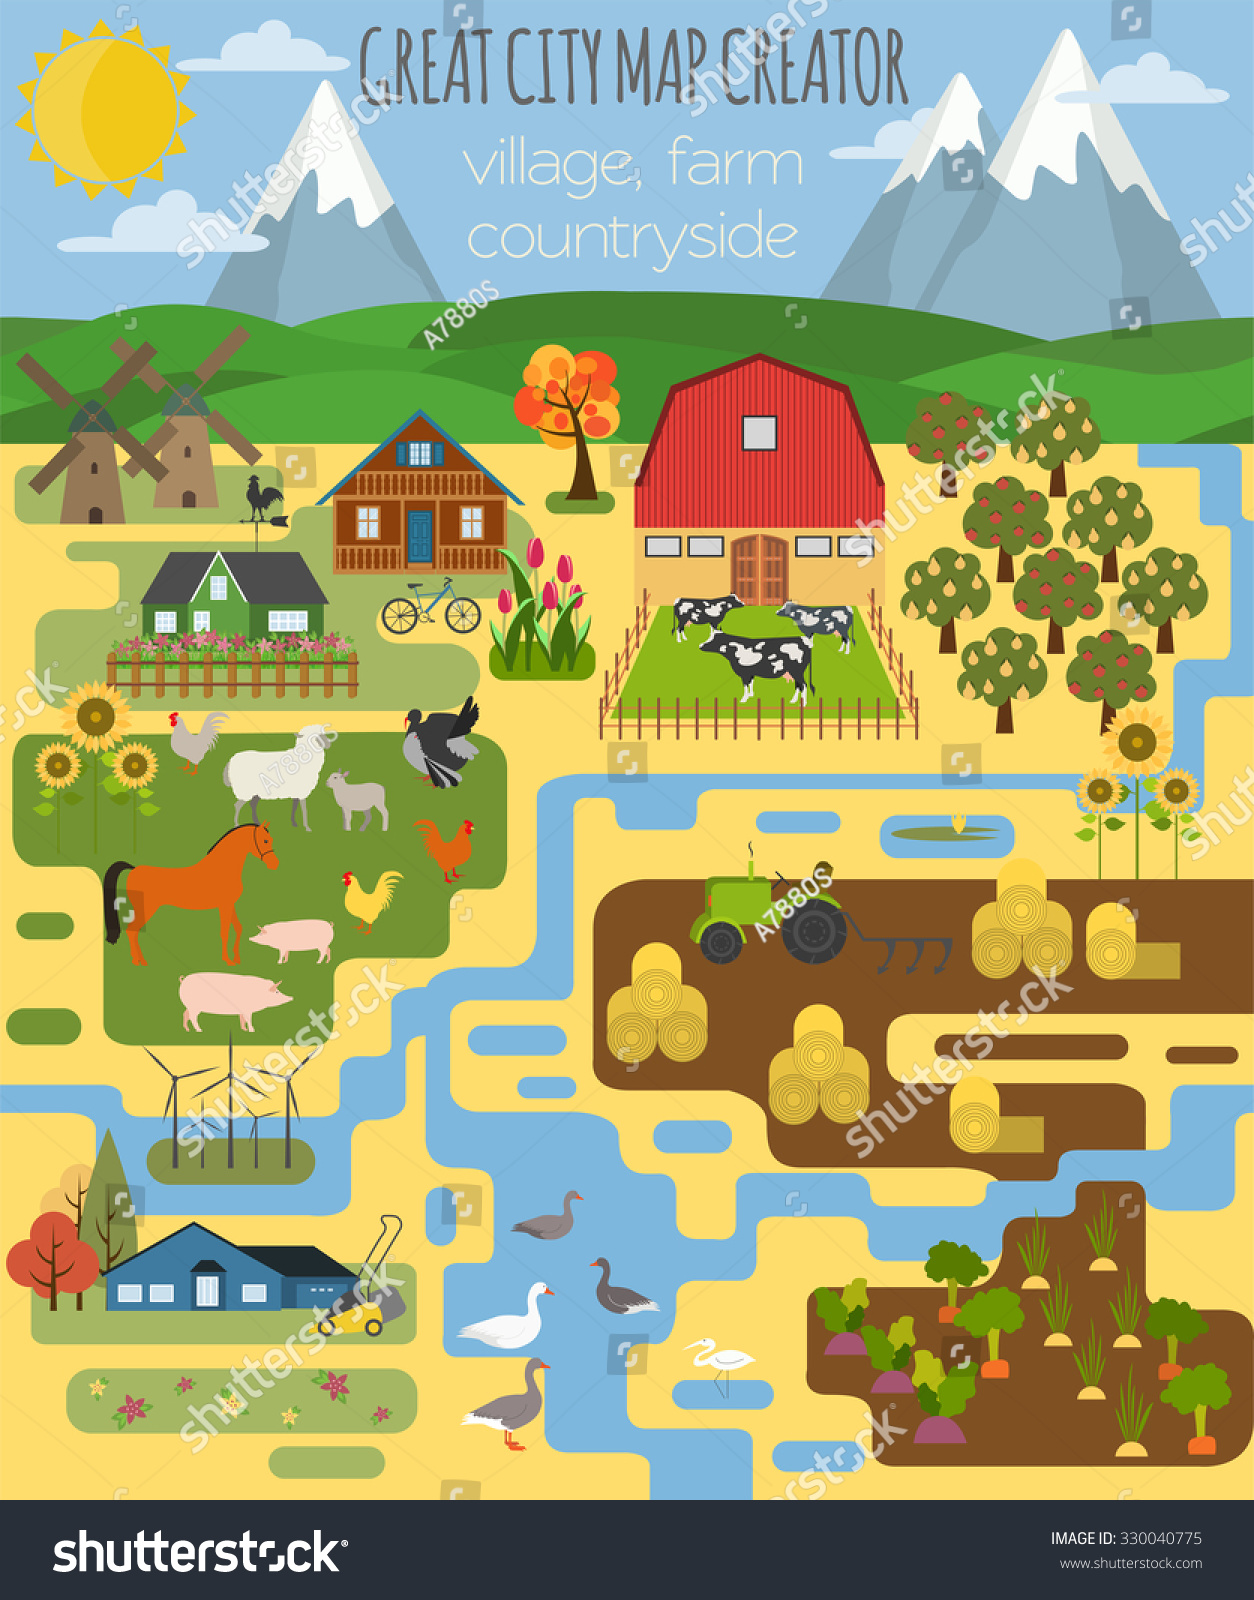 Great City Map Creator Village Farm Countryside